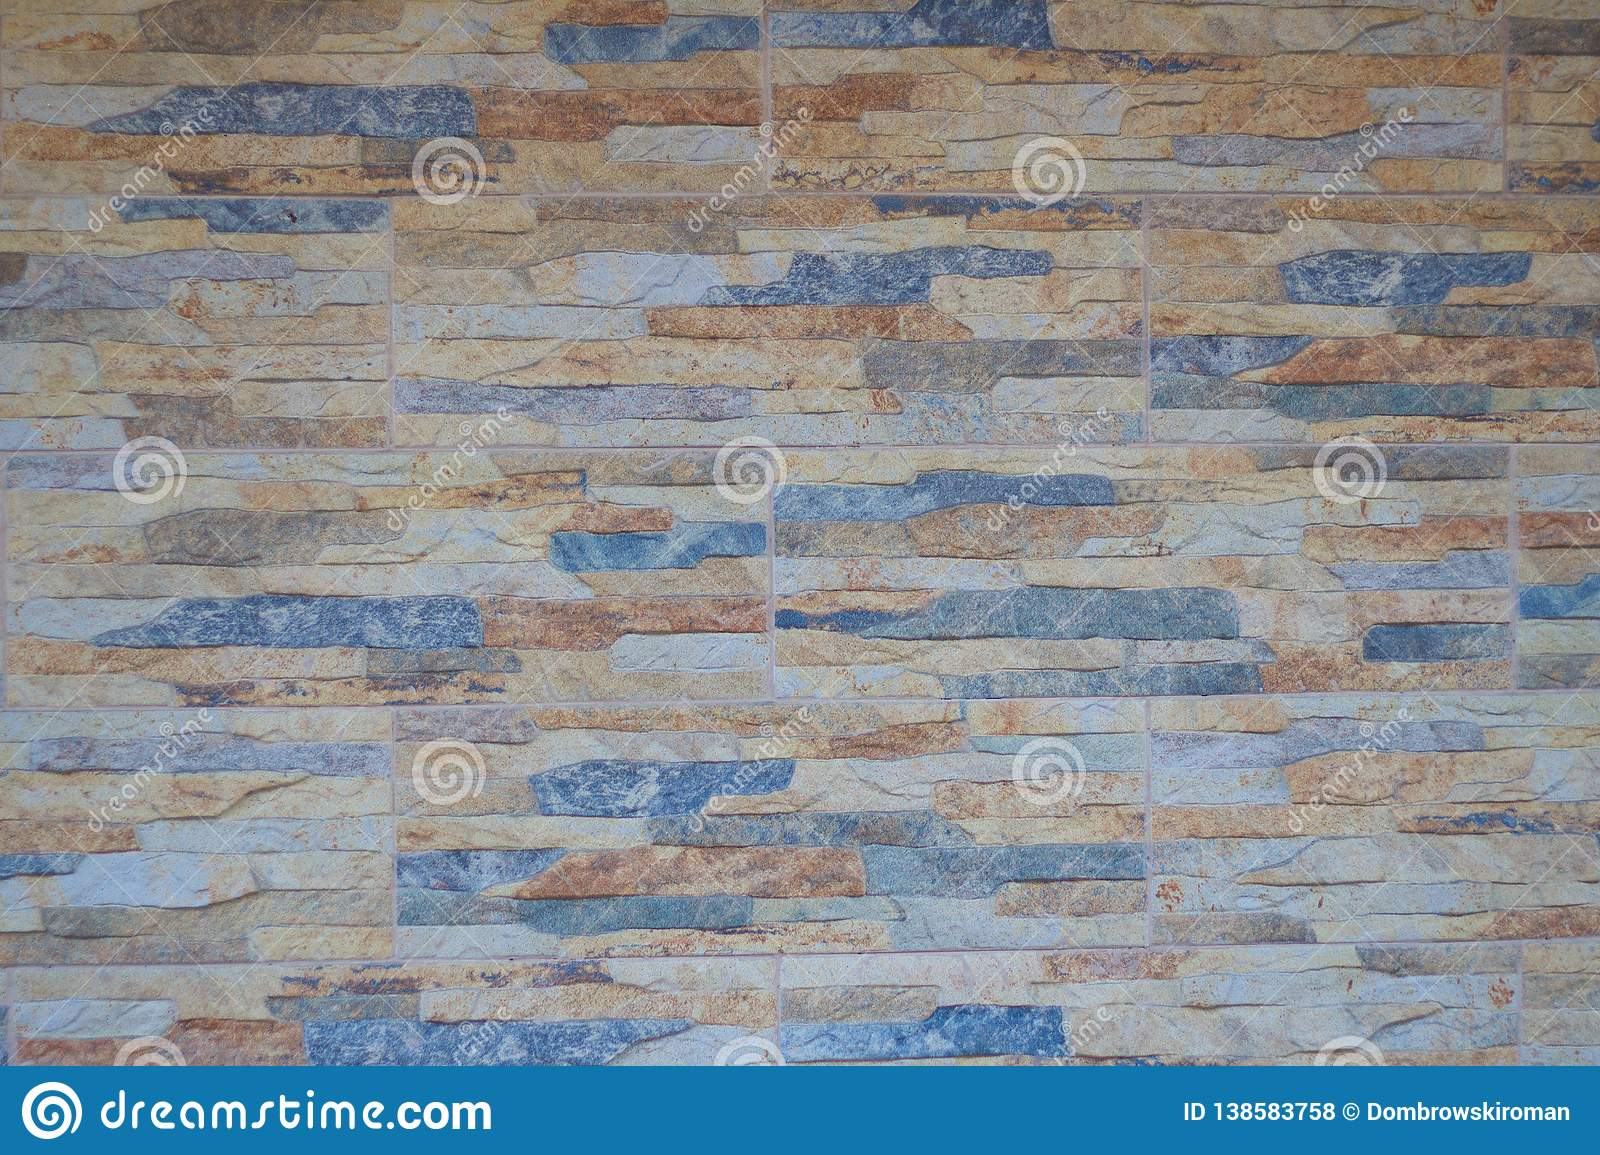 Multicolor of Stone ceramic Brick wall beautiful color texture background for art interiors design in home, house